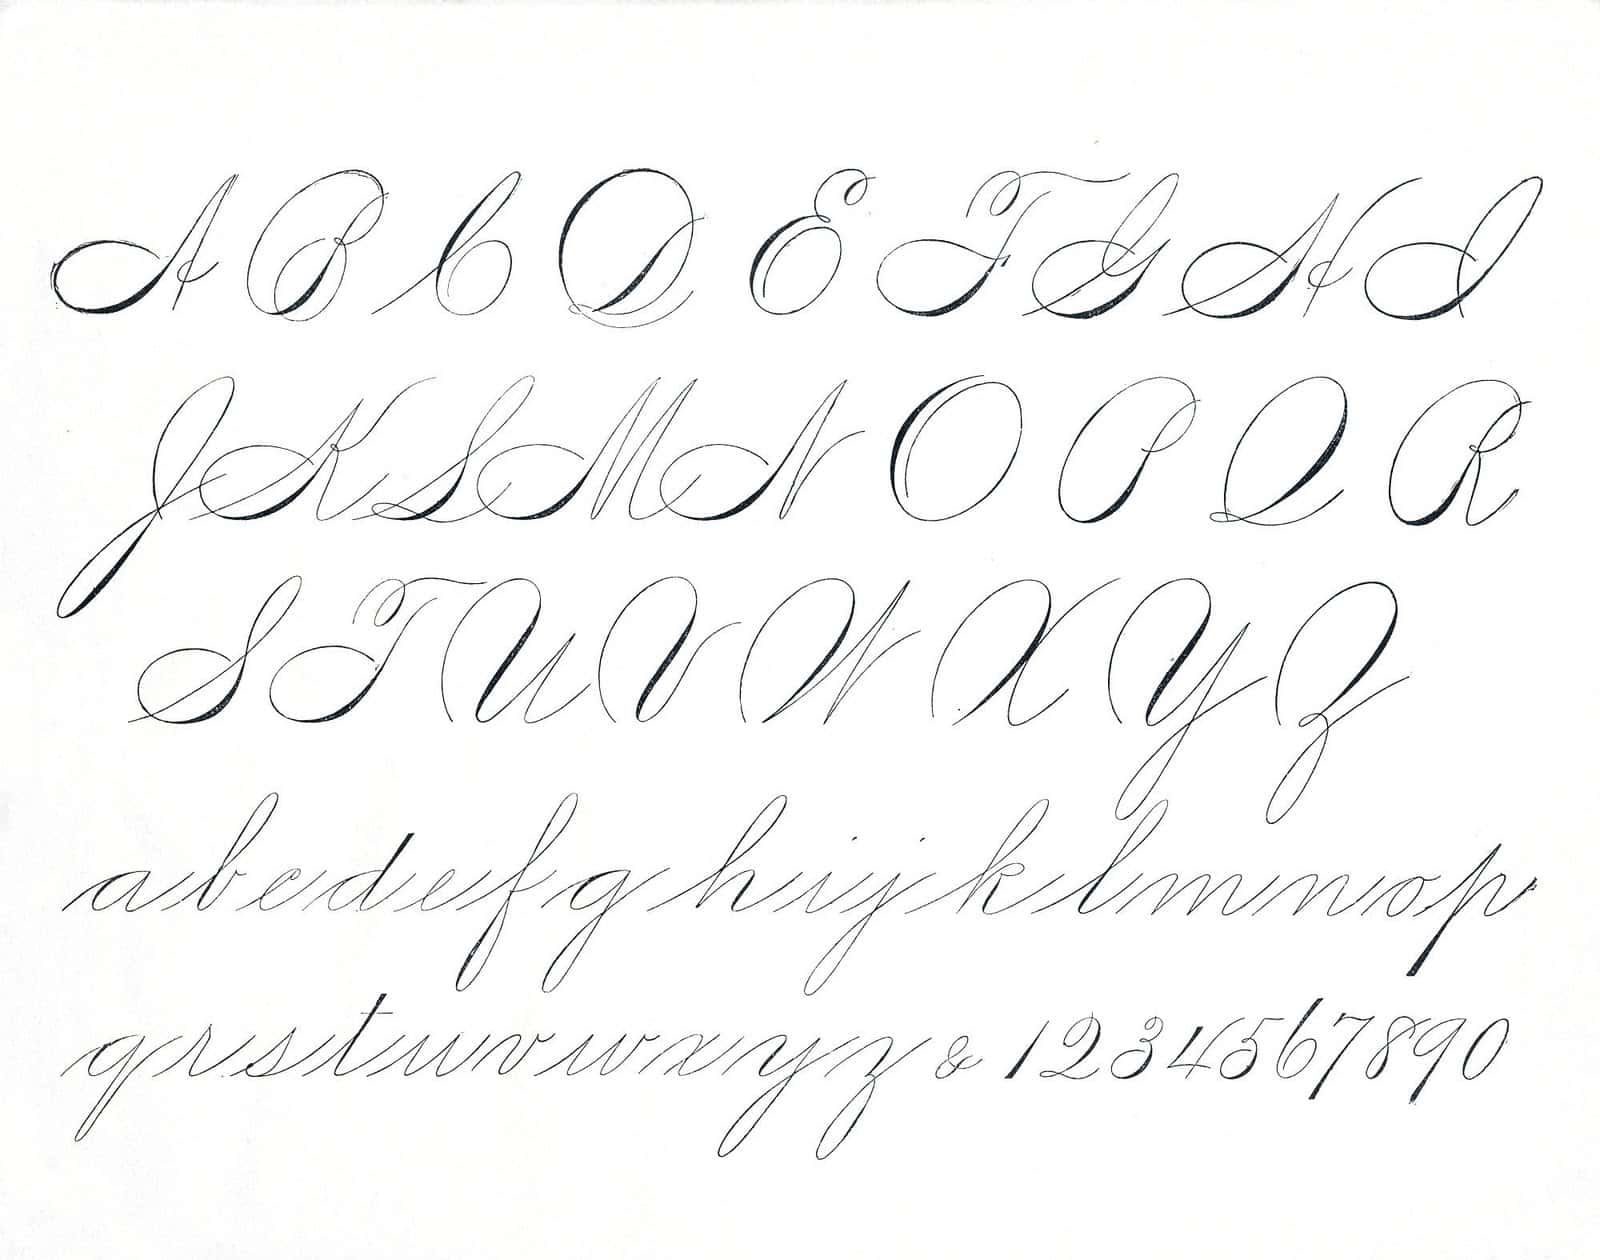 Elegant Script Spencerian And Copperplate Roundhand